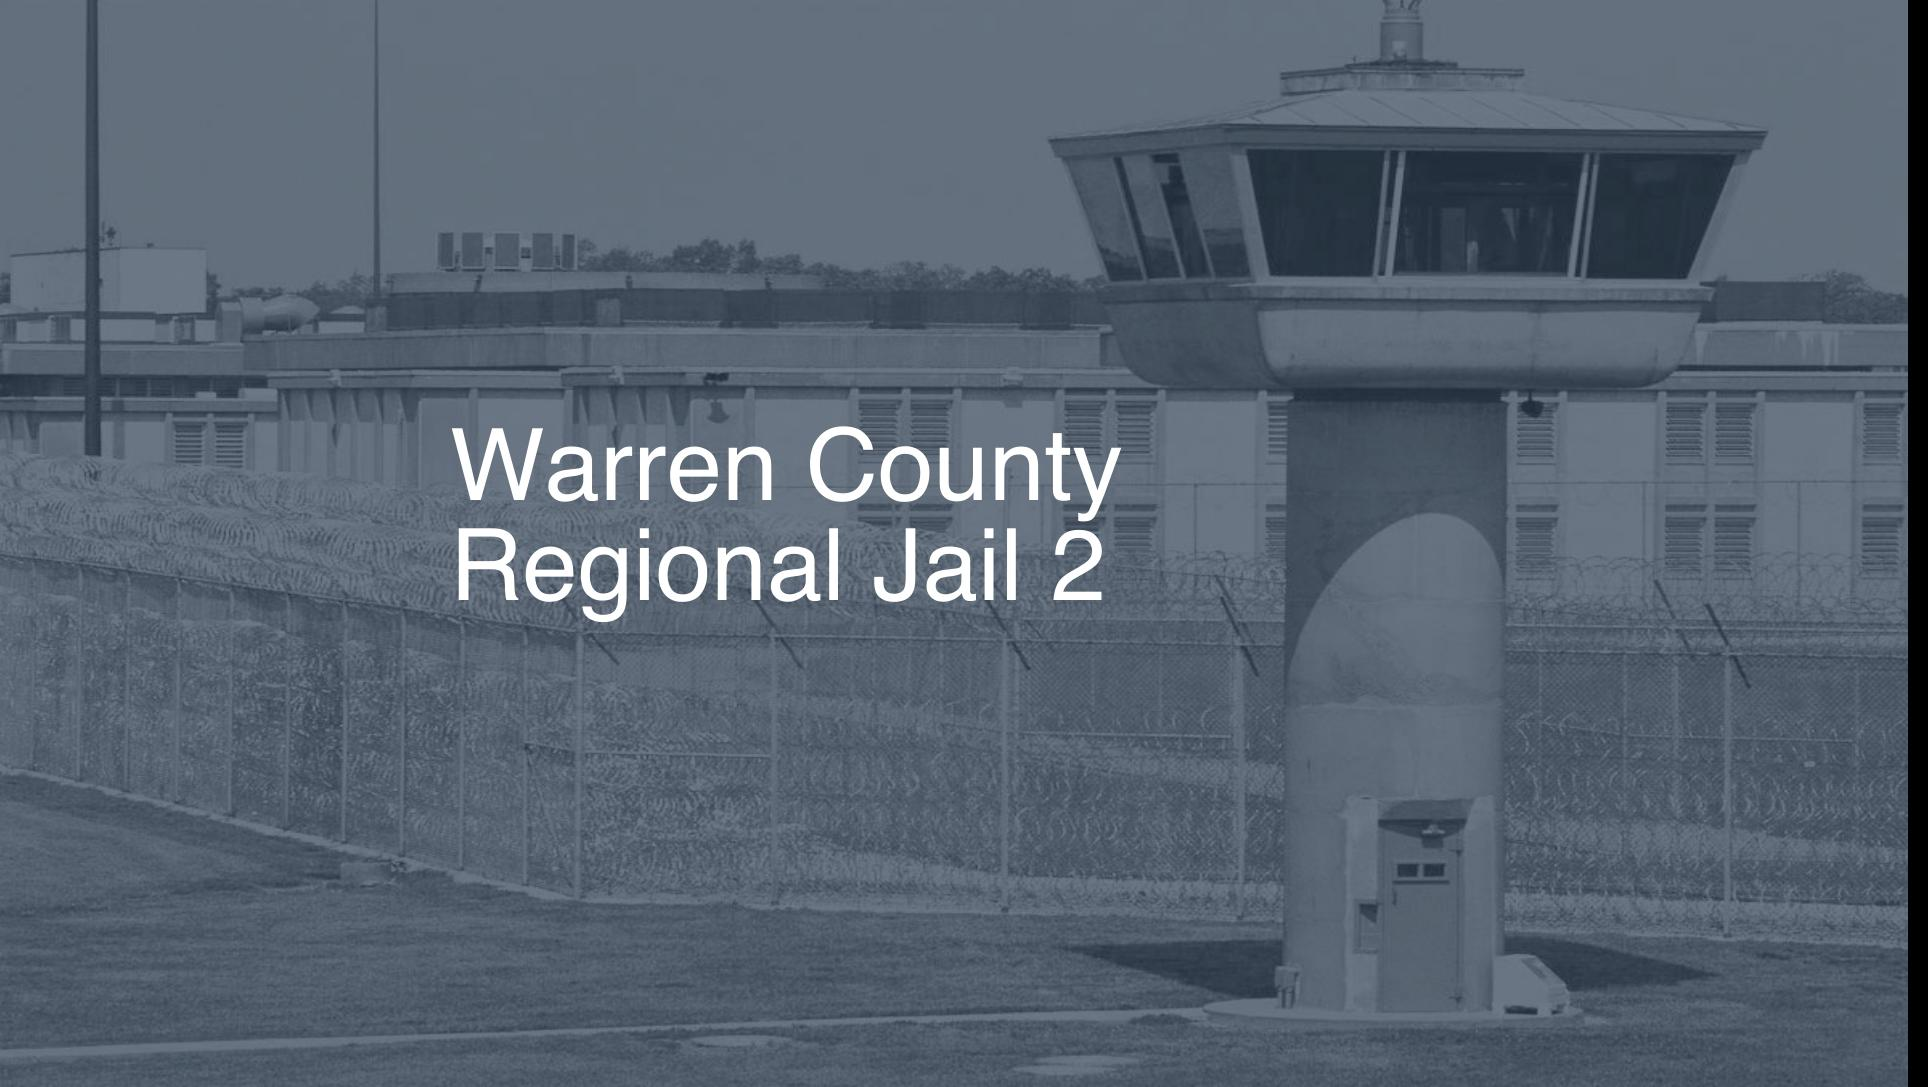 Warren County Regional Jail Inmate Search, Lookup & Services - Pigeonly